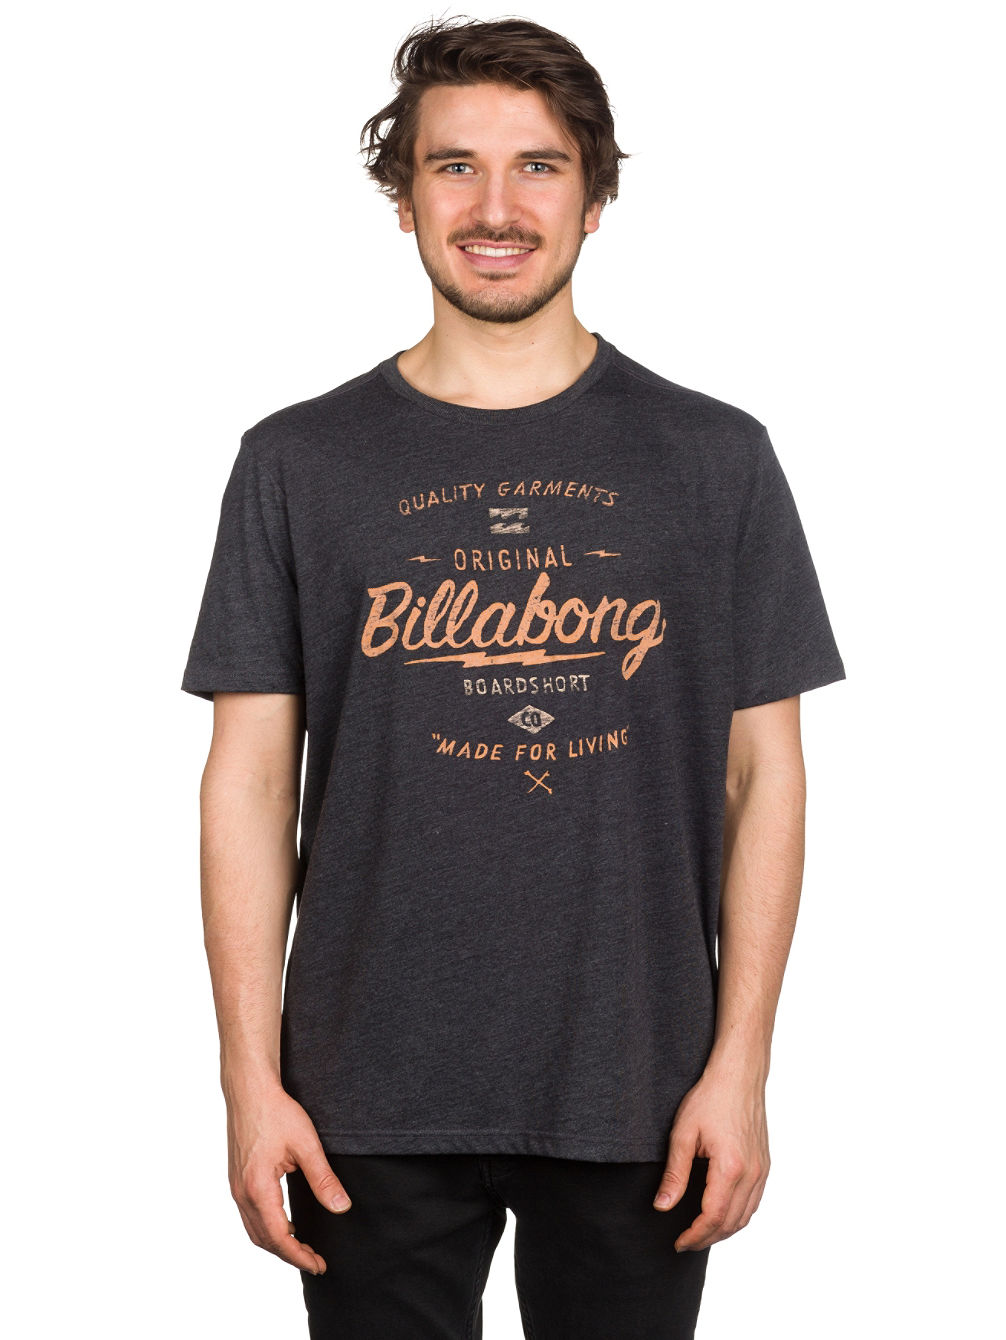 billabong-choppers-t-shirt